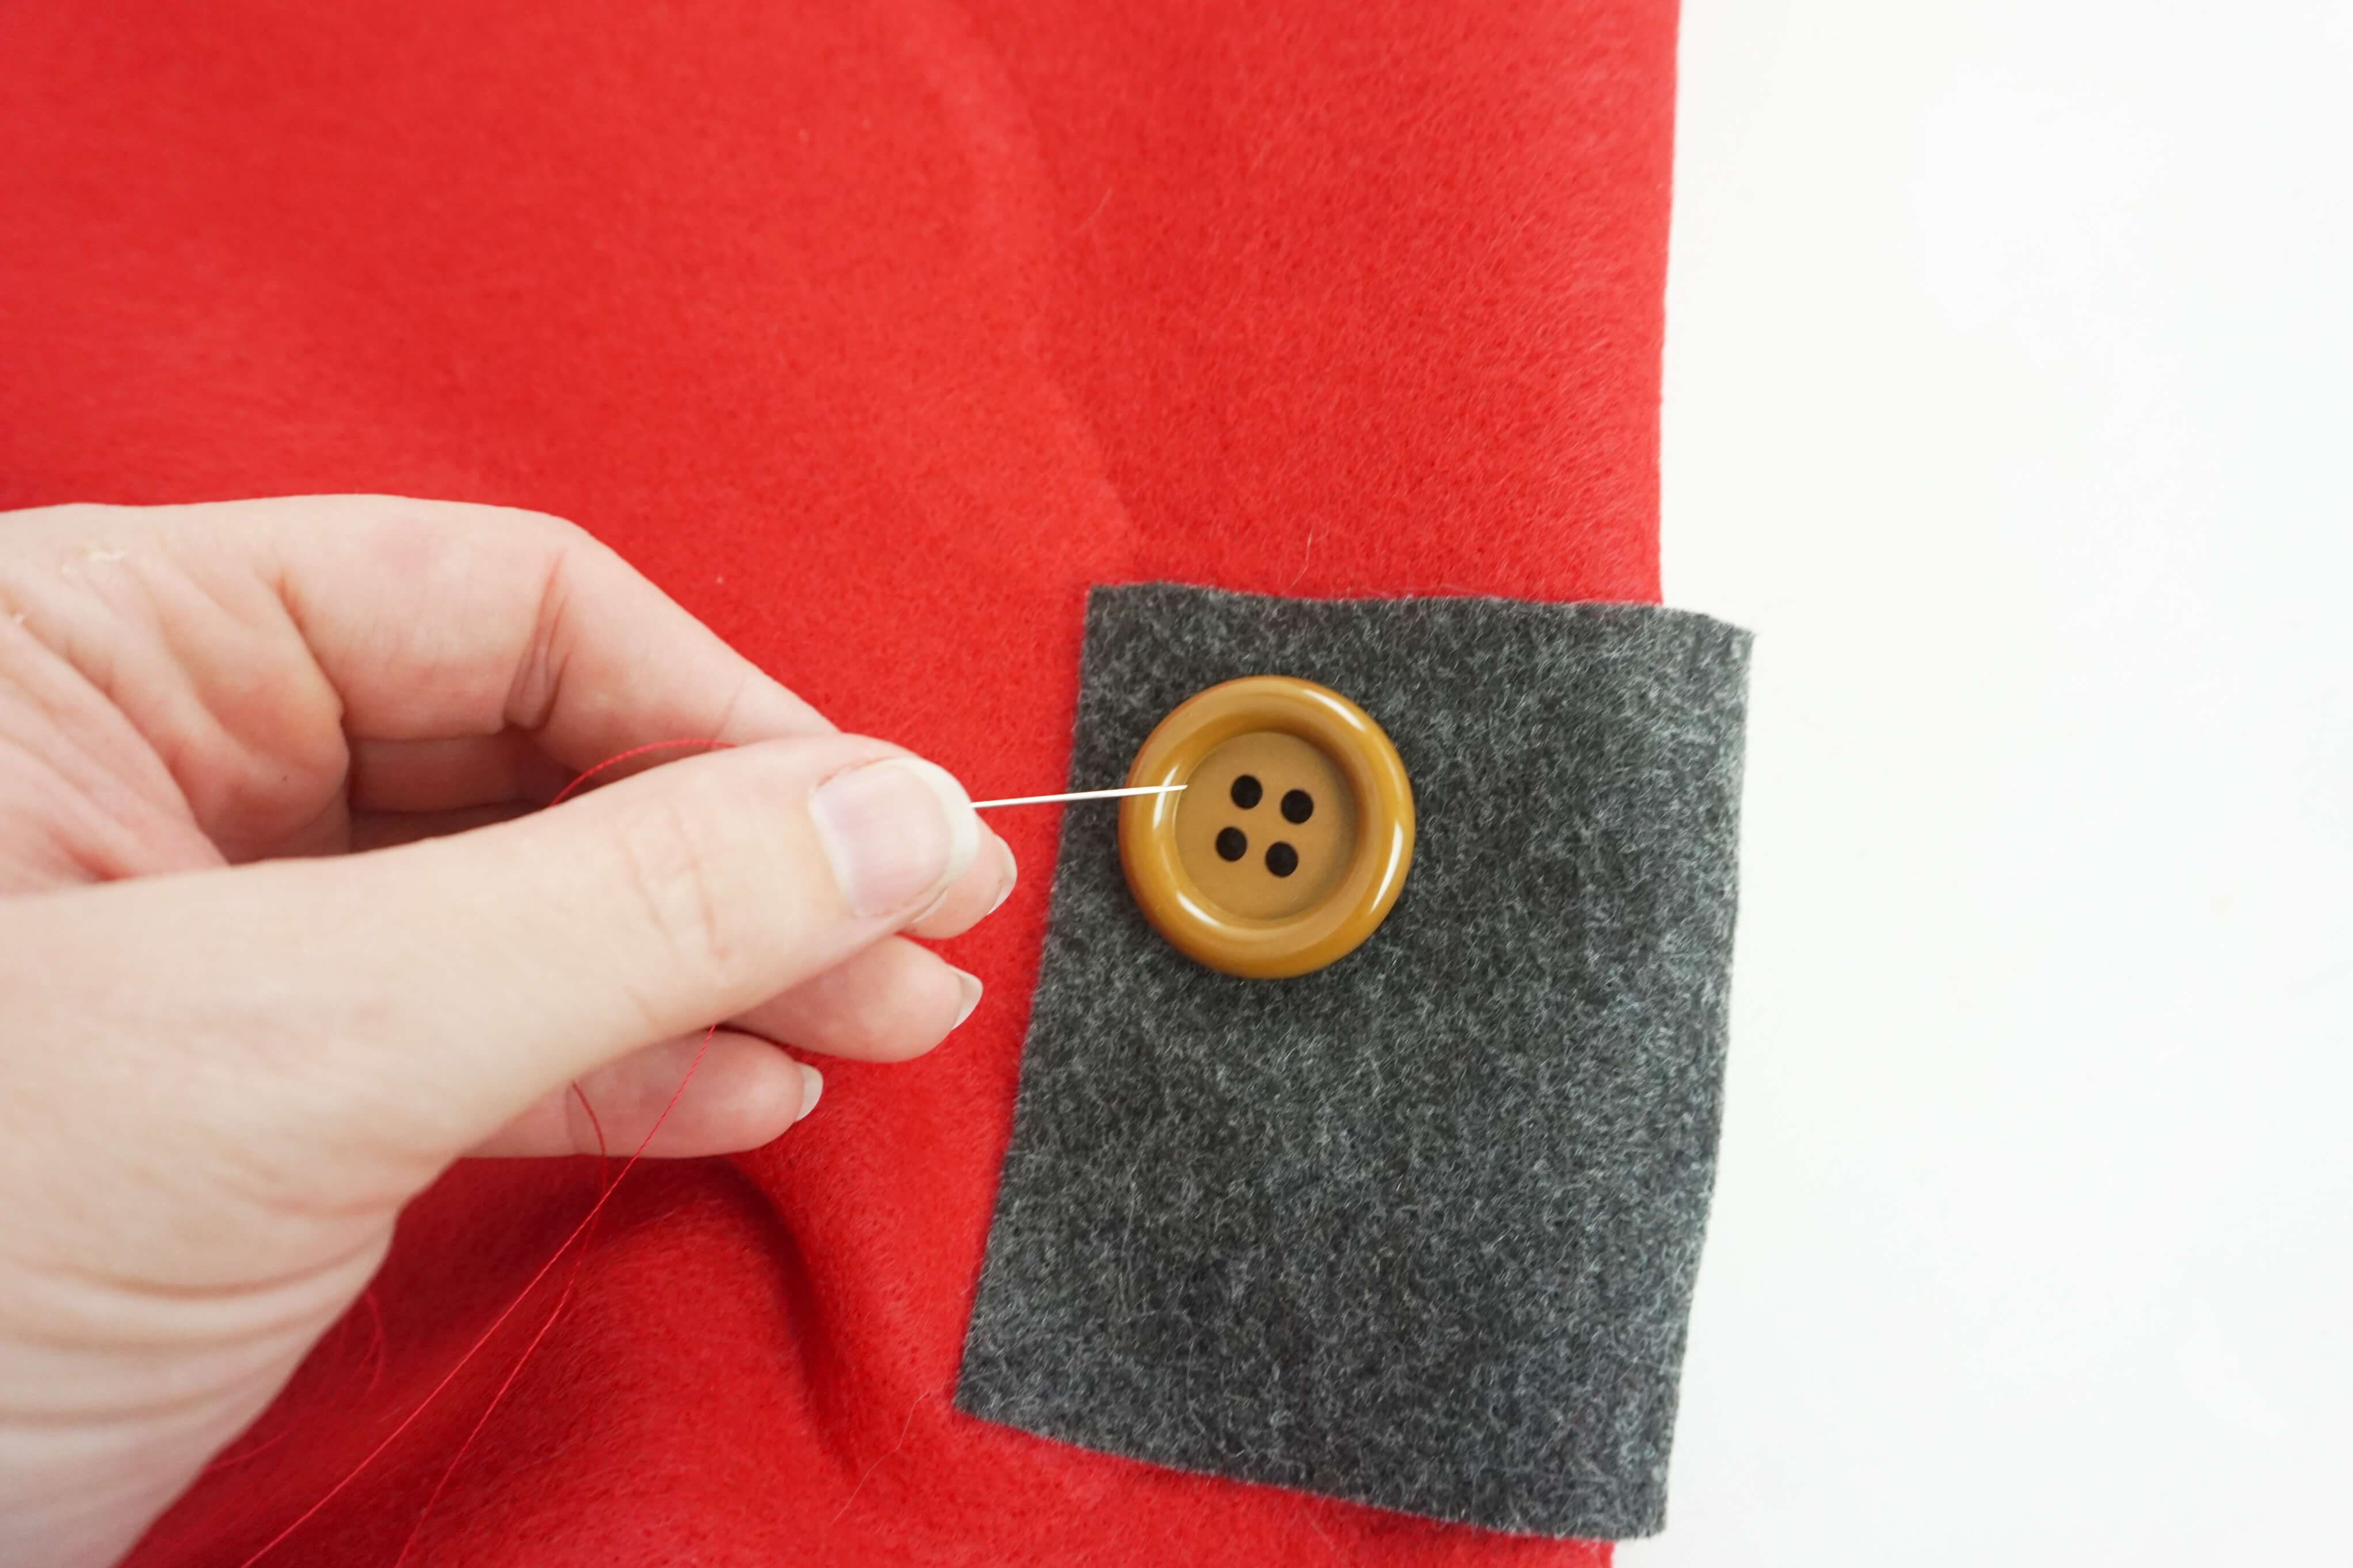 gnome costume detail of hand sewing a button onto a pocket